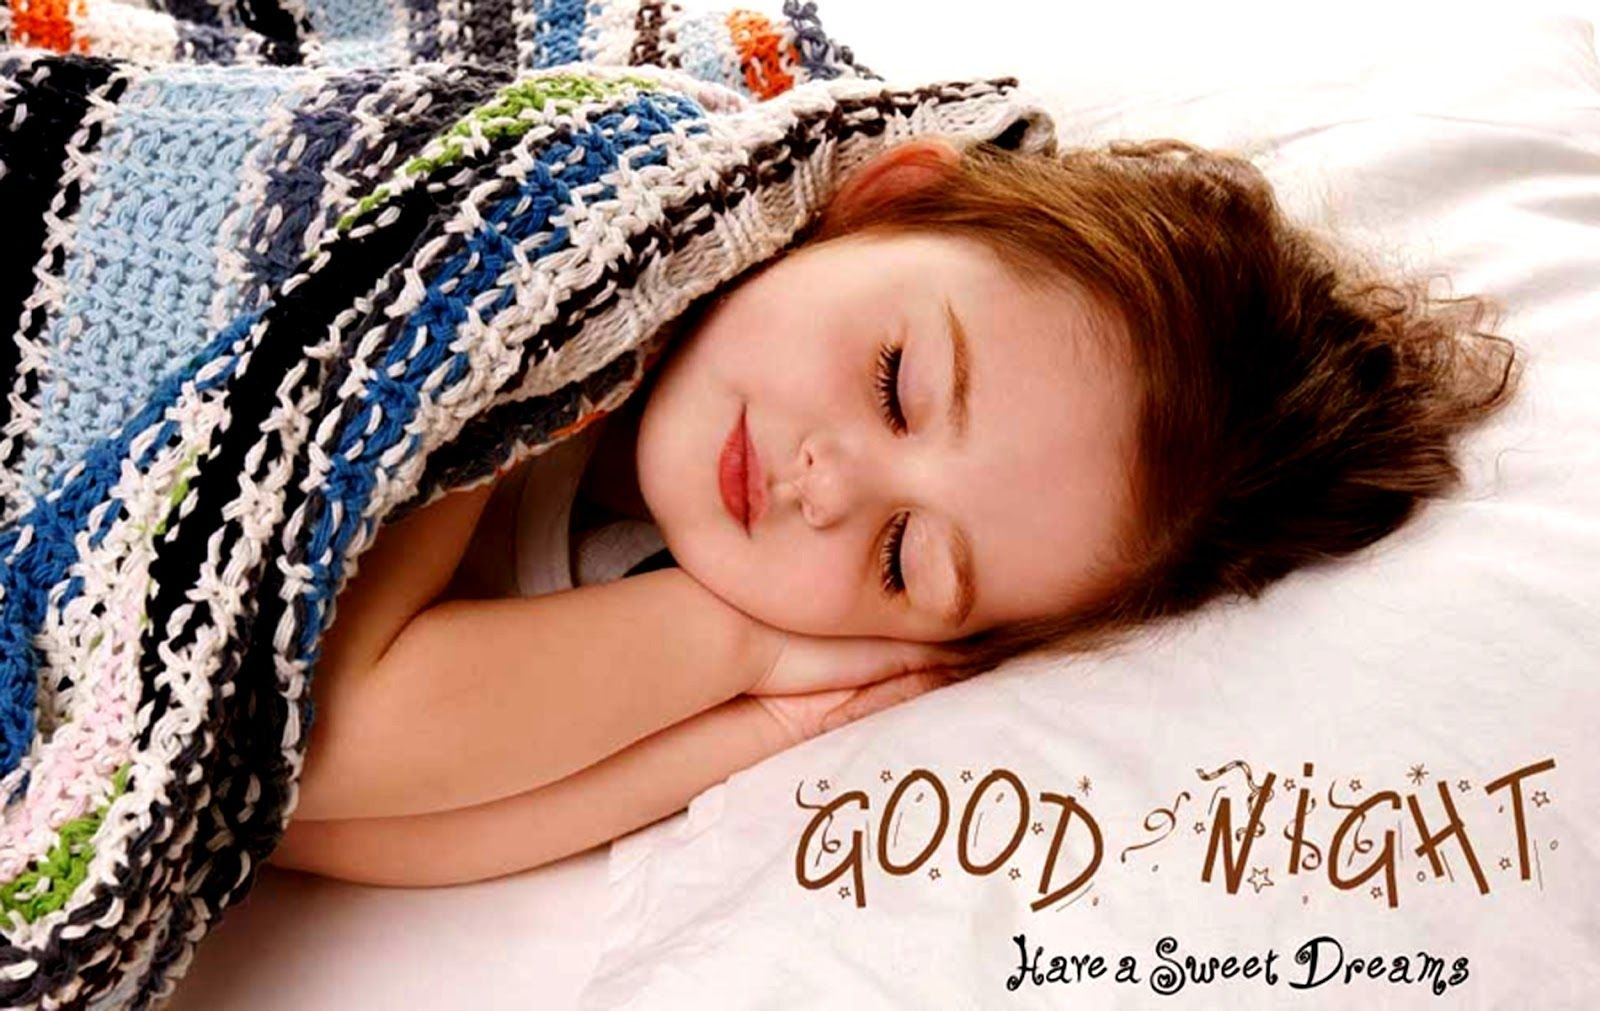 Cute Good Night Girl Sleeping Inspirational Good Night Quotes And